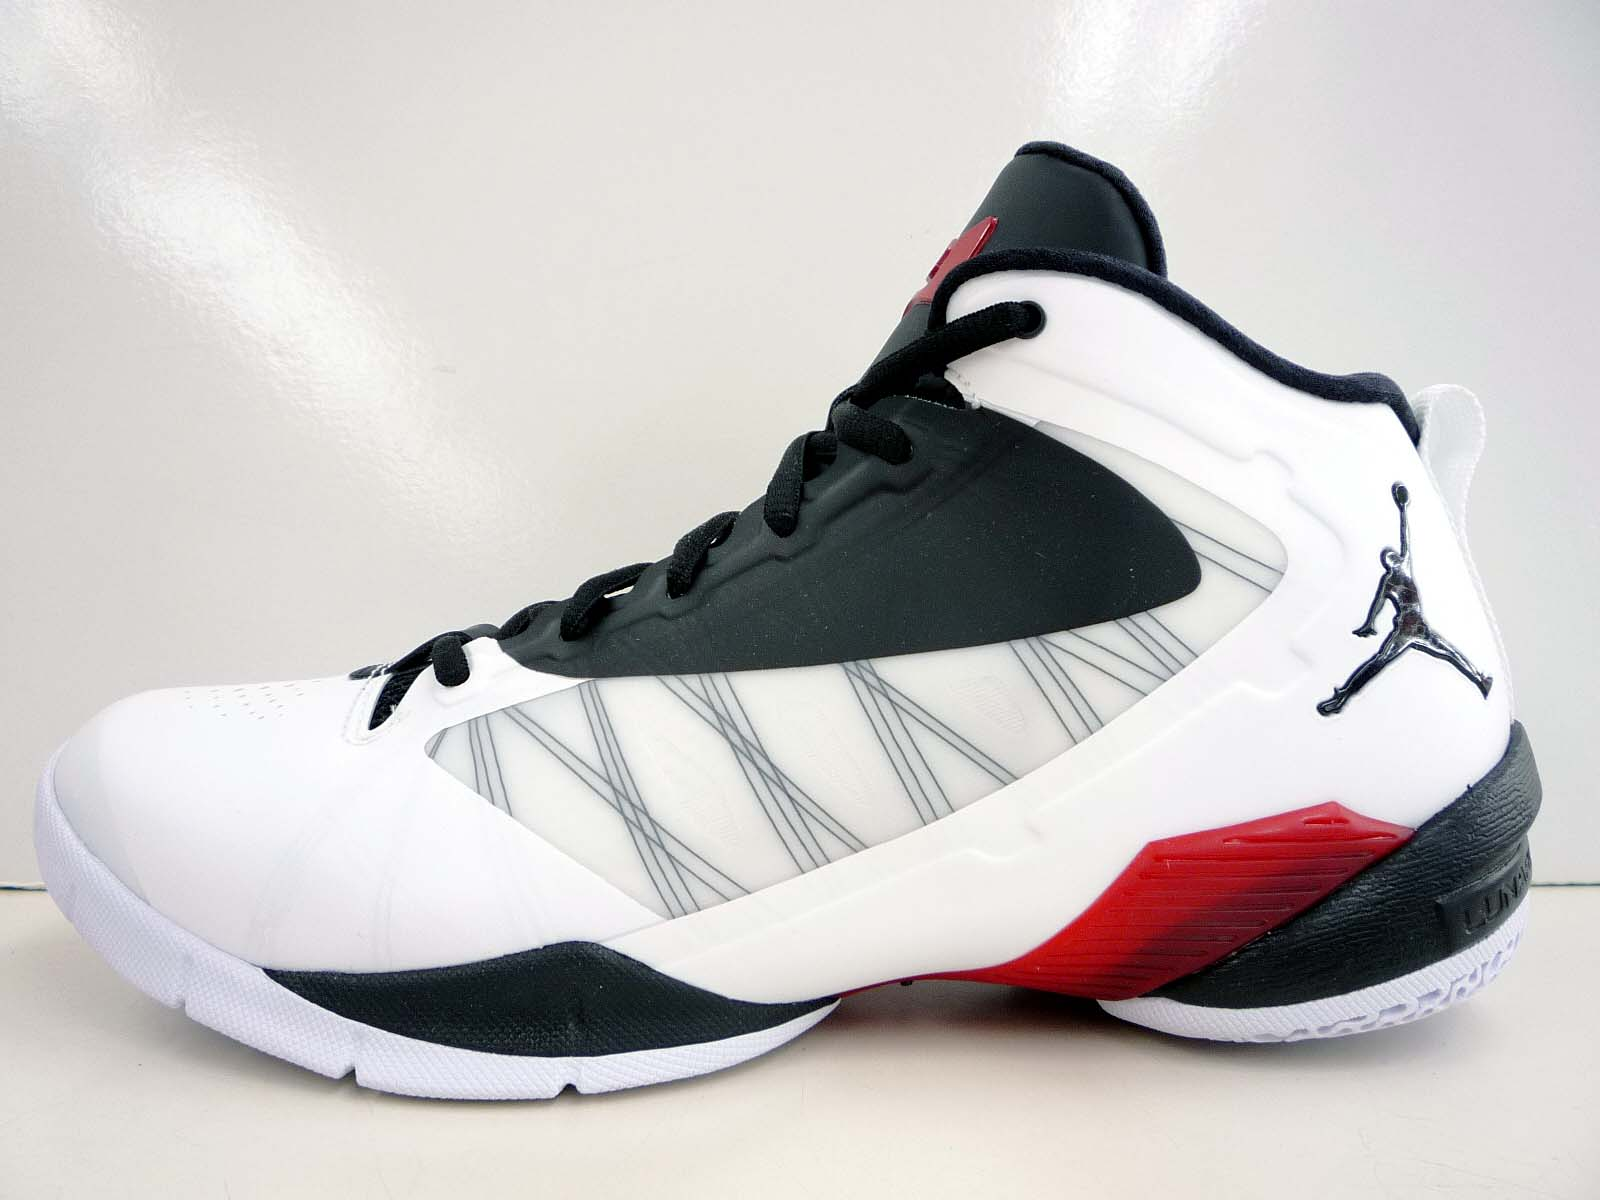 389d0d4cd8c6 Jordan Fly Wade 2 EV - White Black-Varsity Red